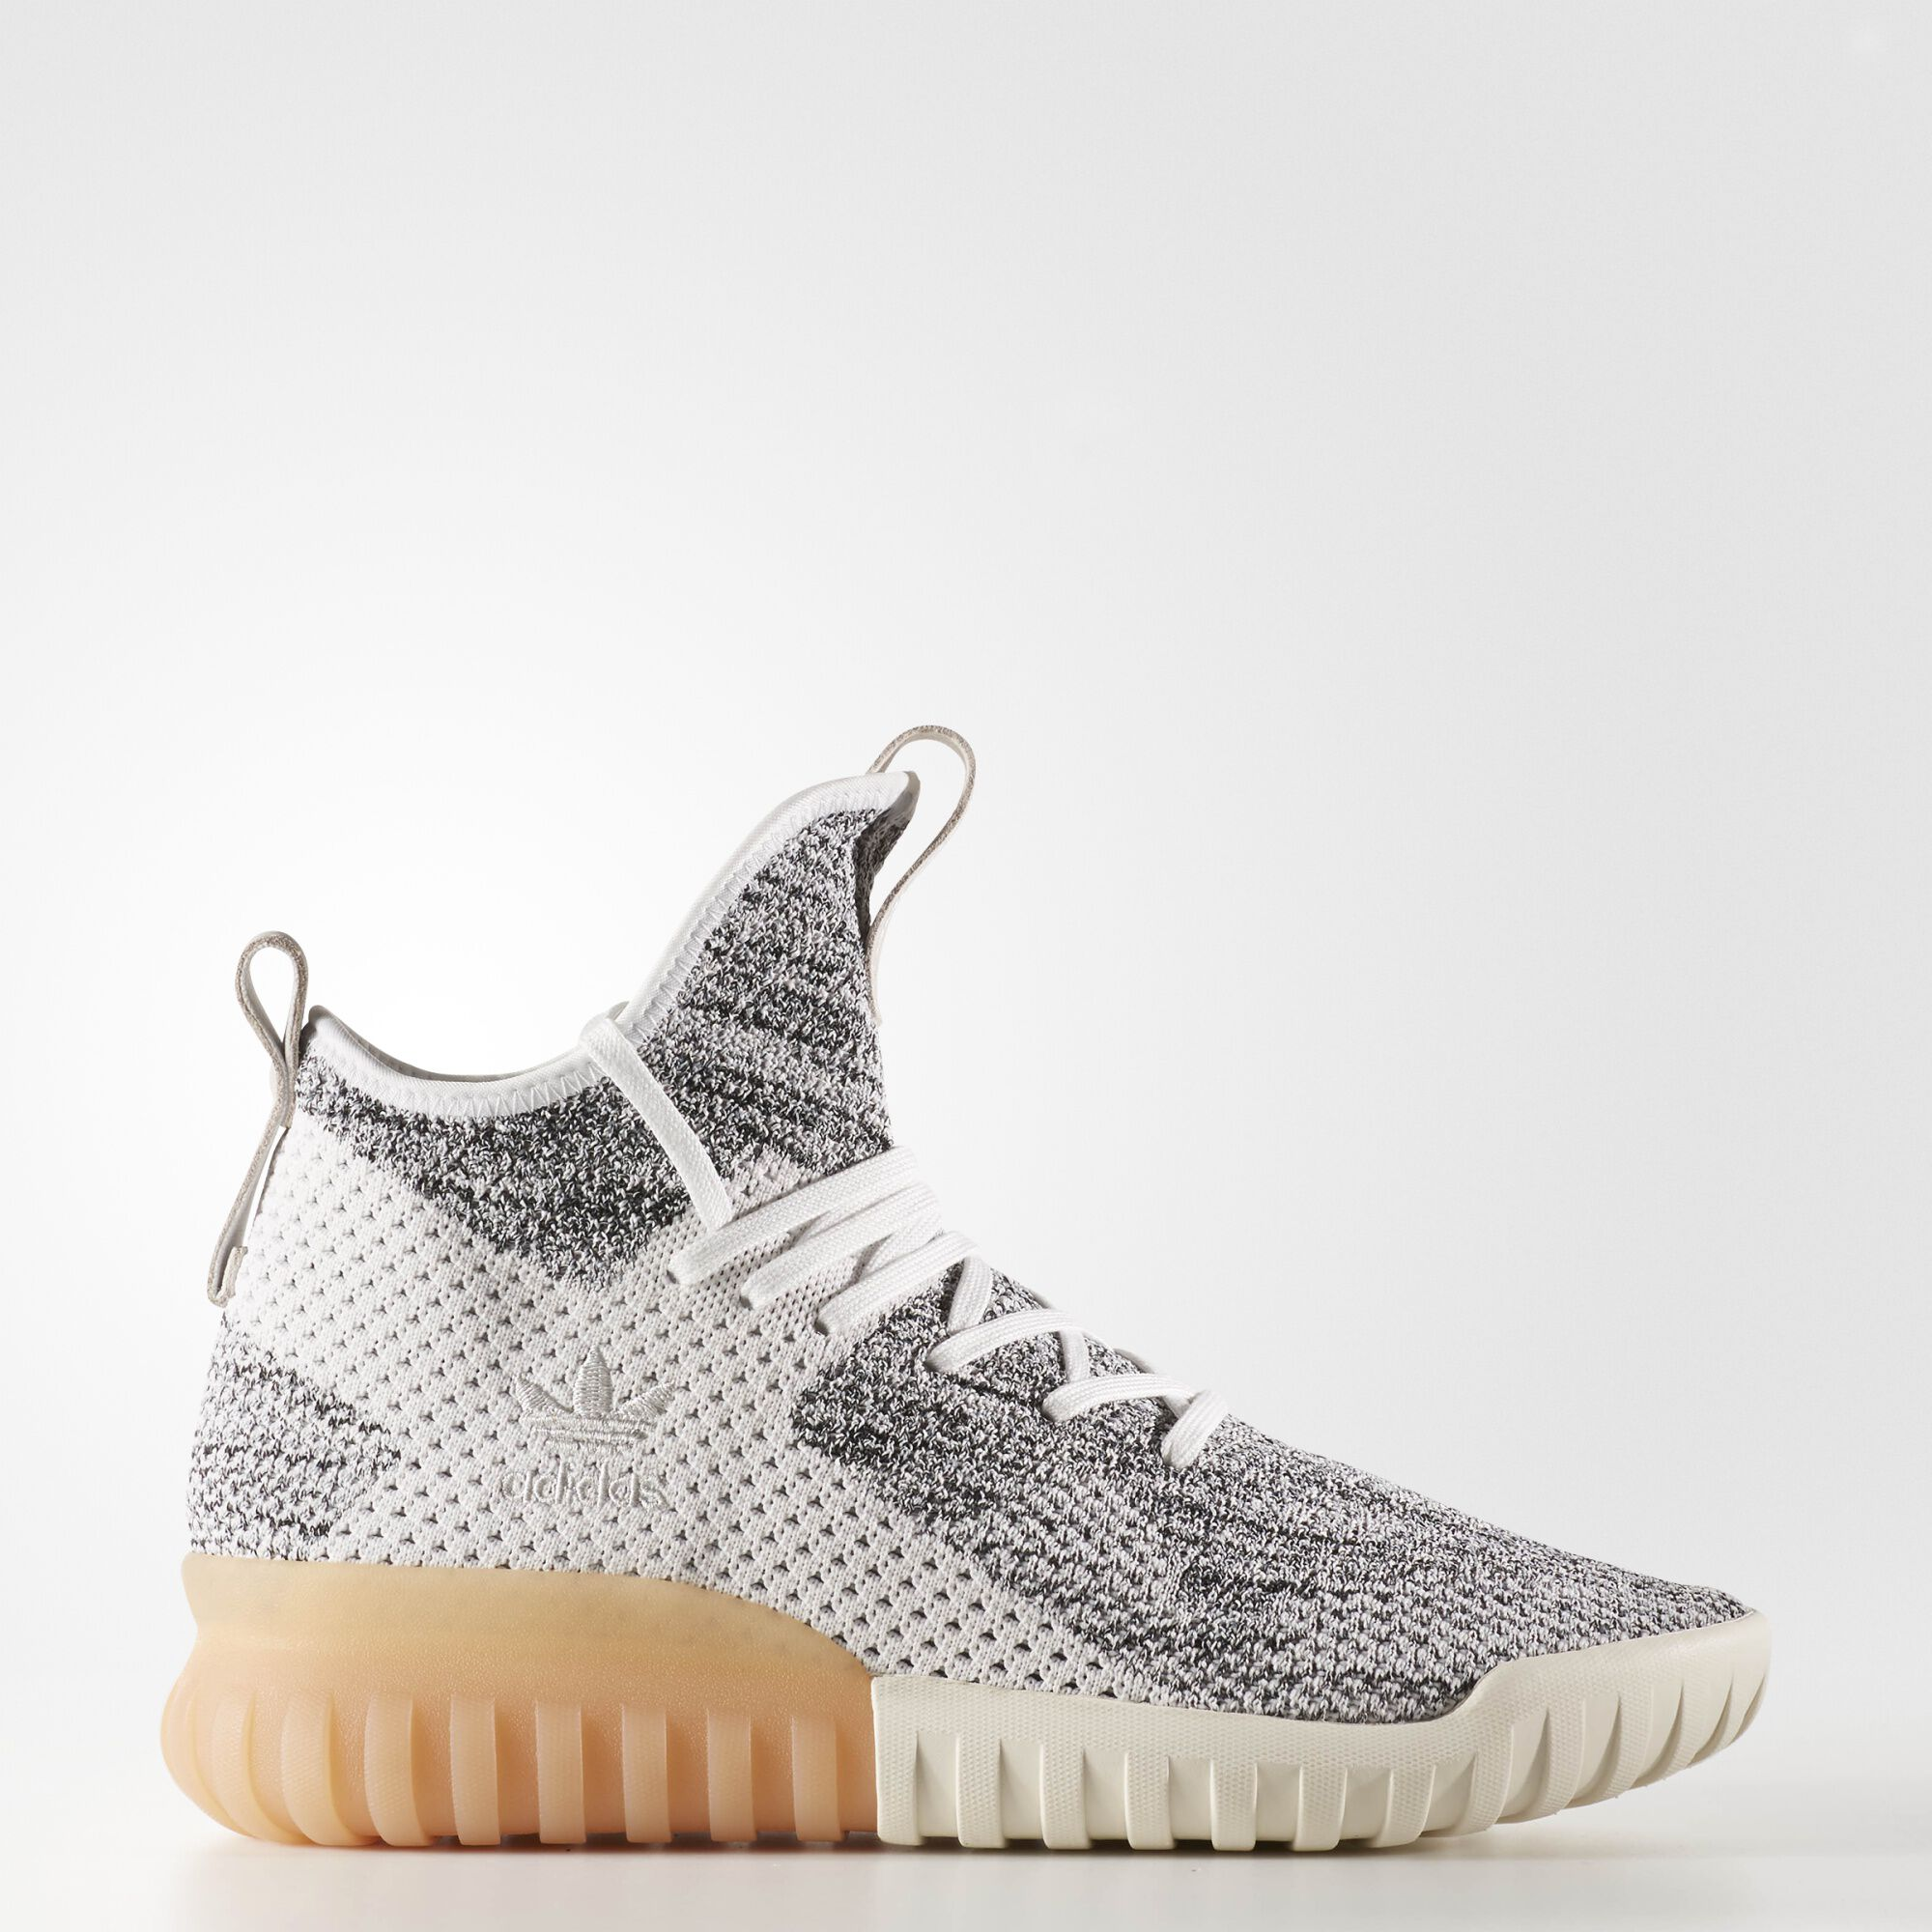 adidas Originals Tubular Shadow Knit